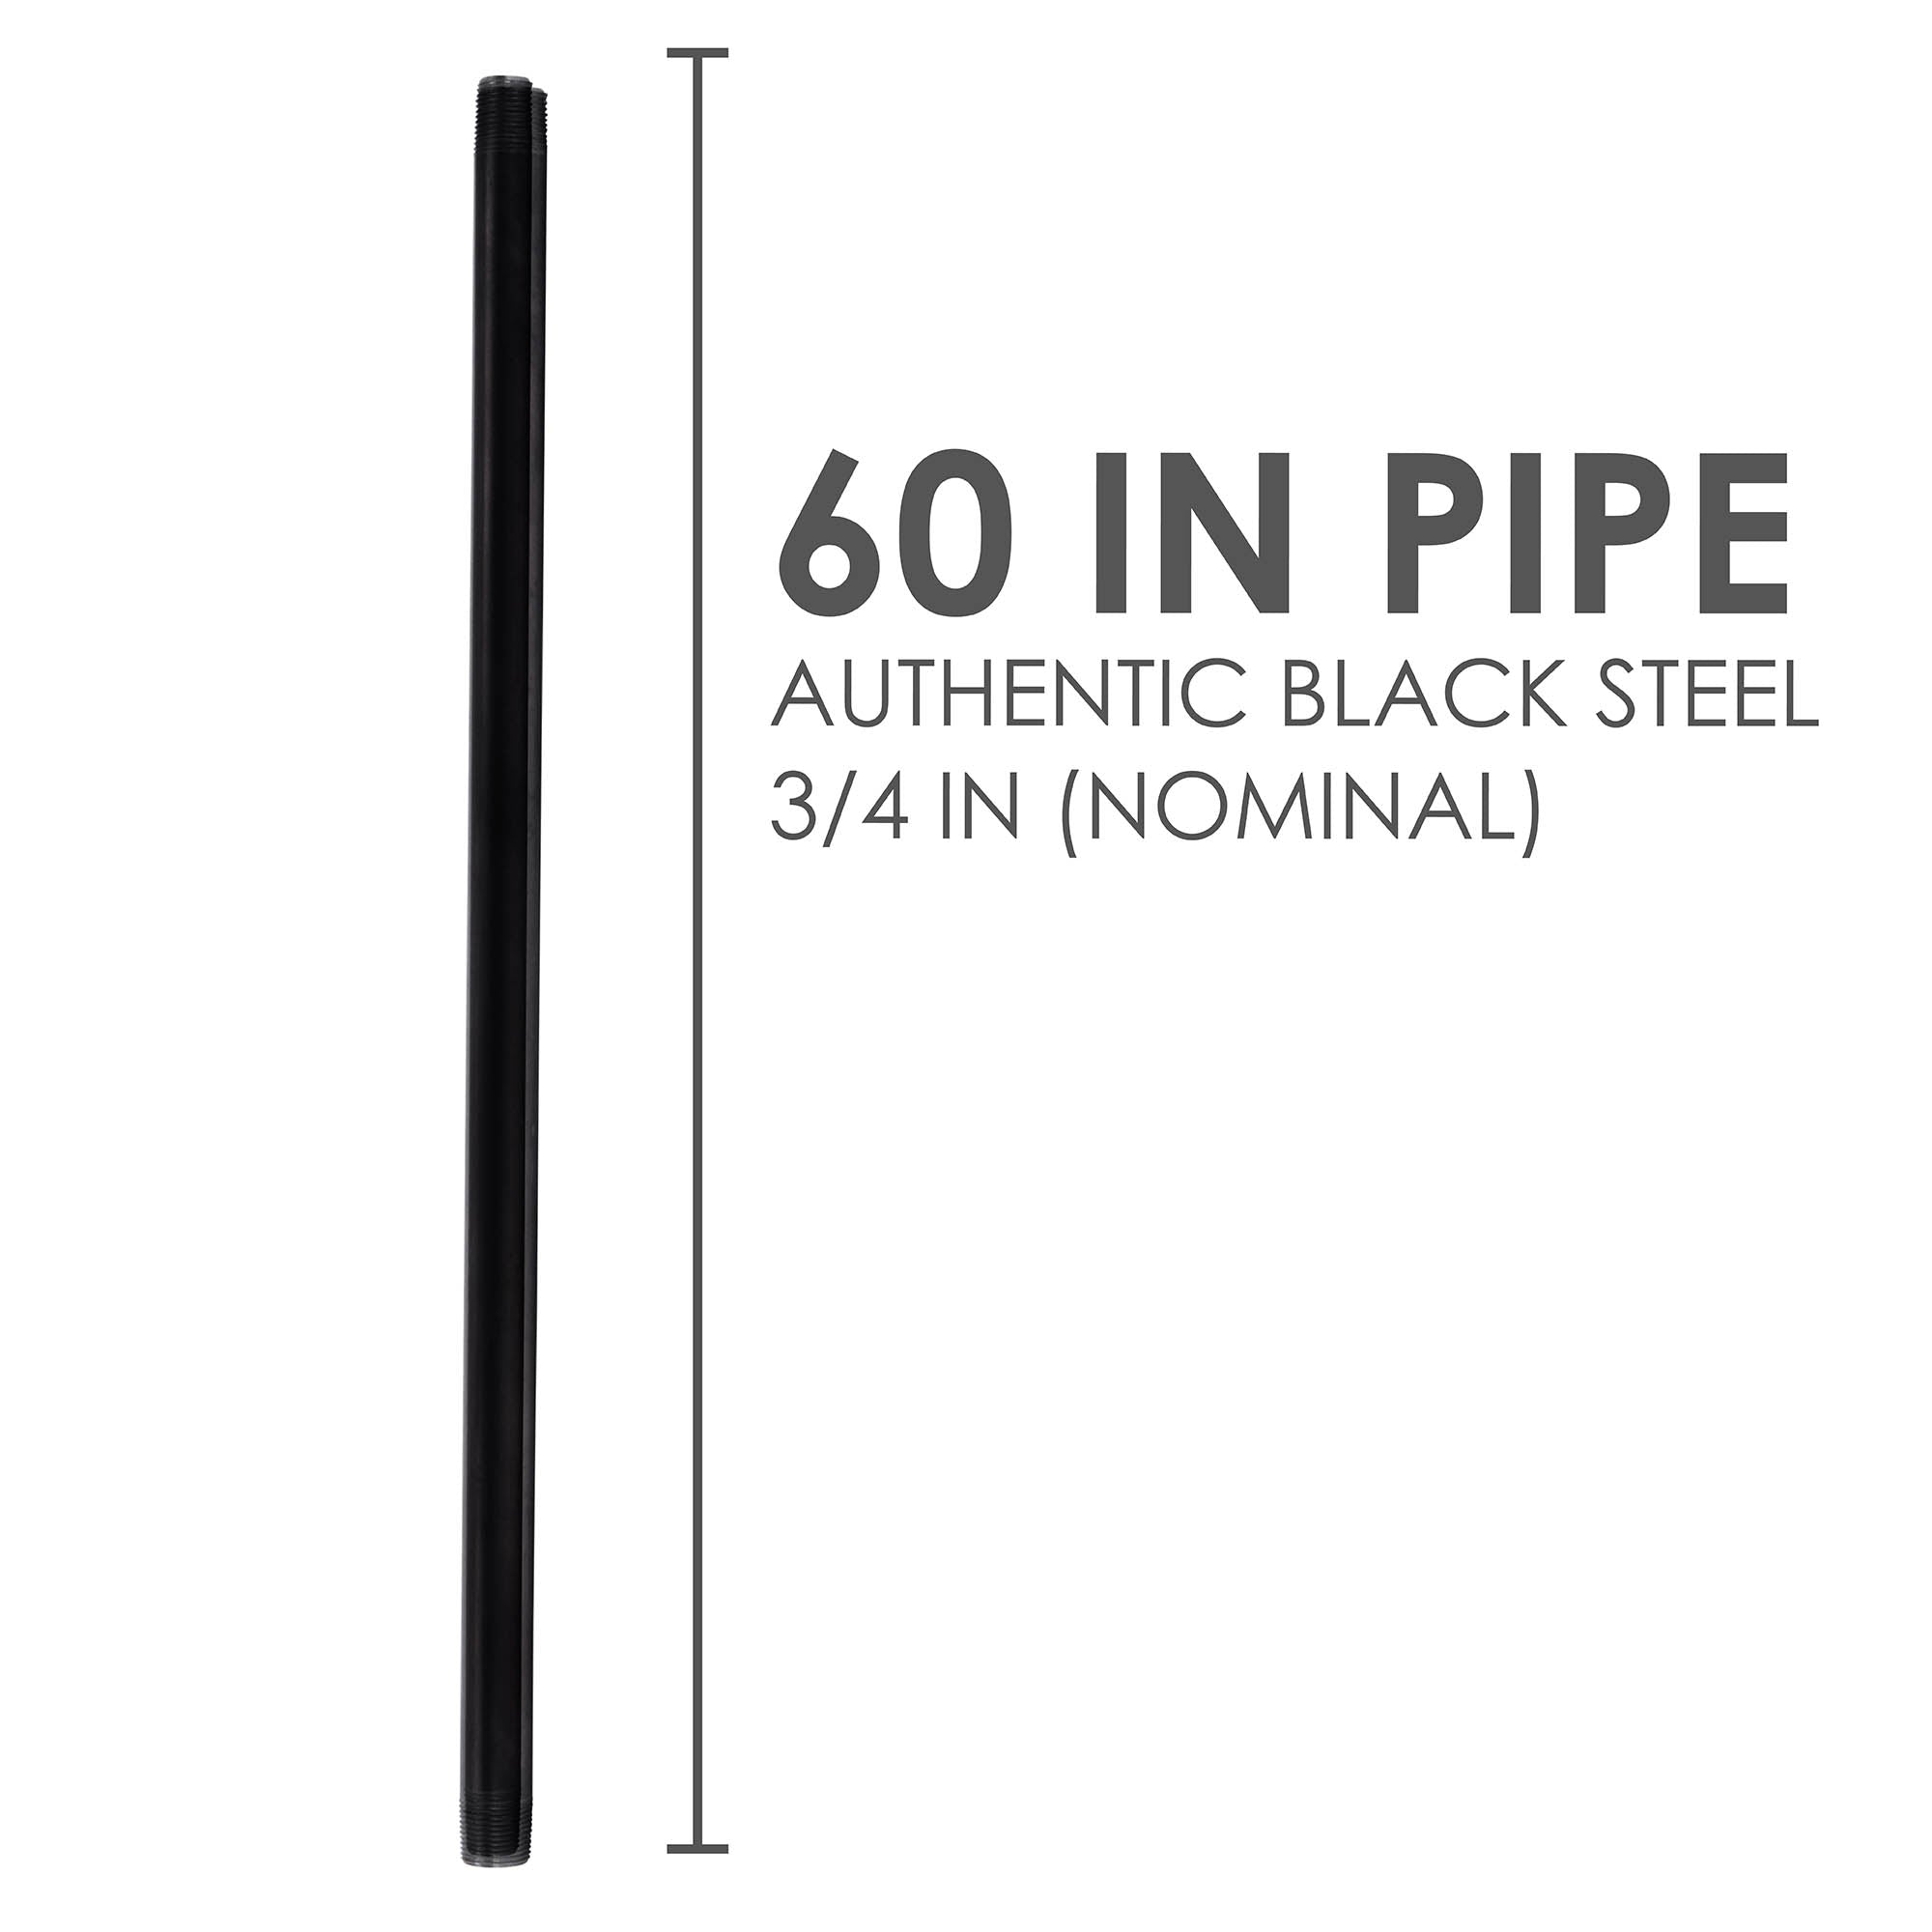 3/4 In X 60 In Black Pipe - Pipe Decor